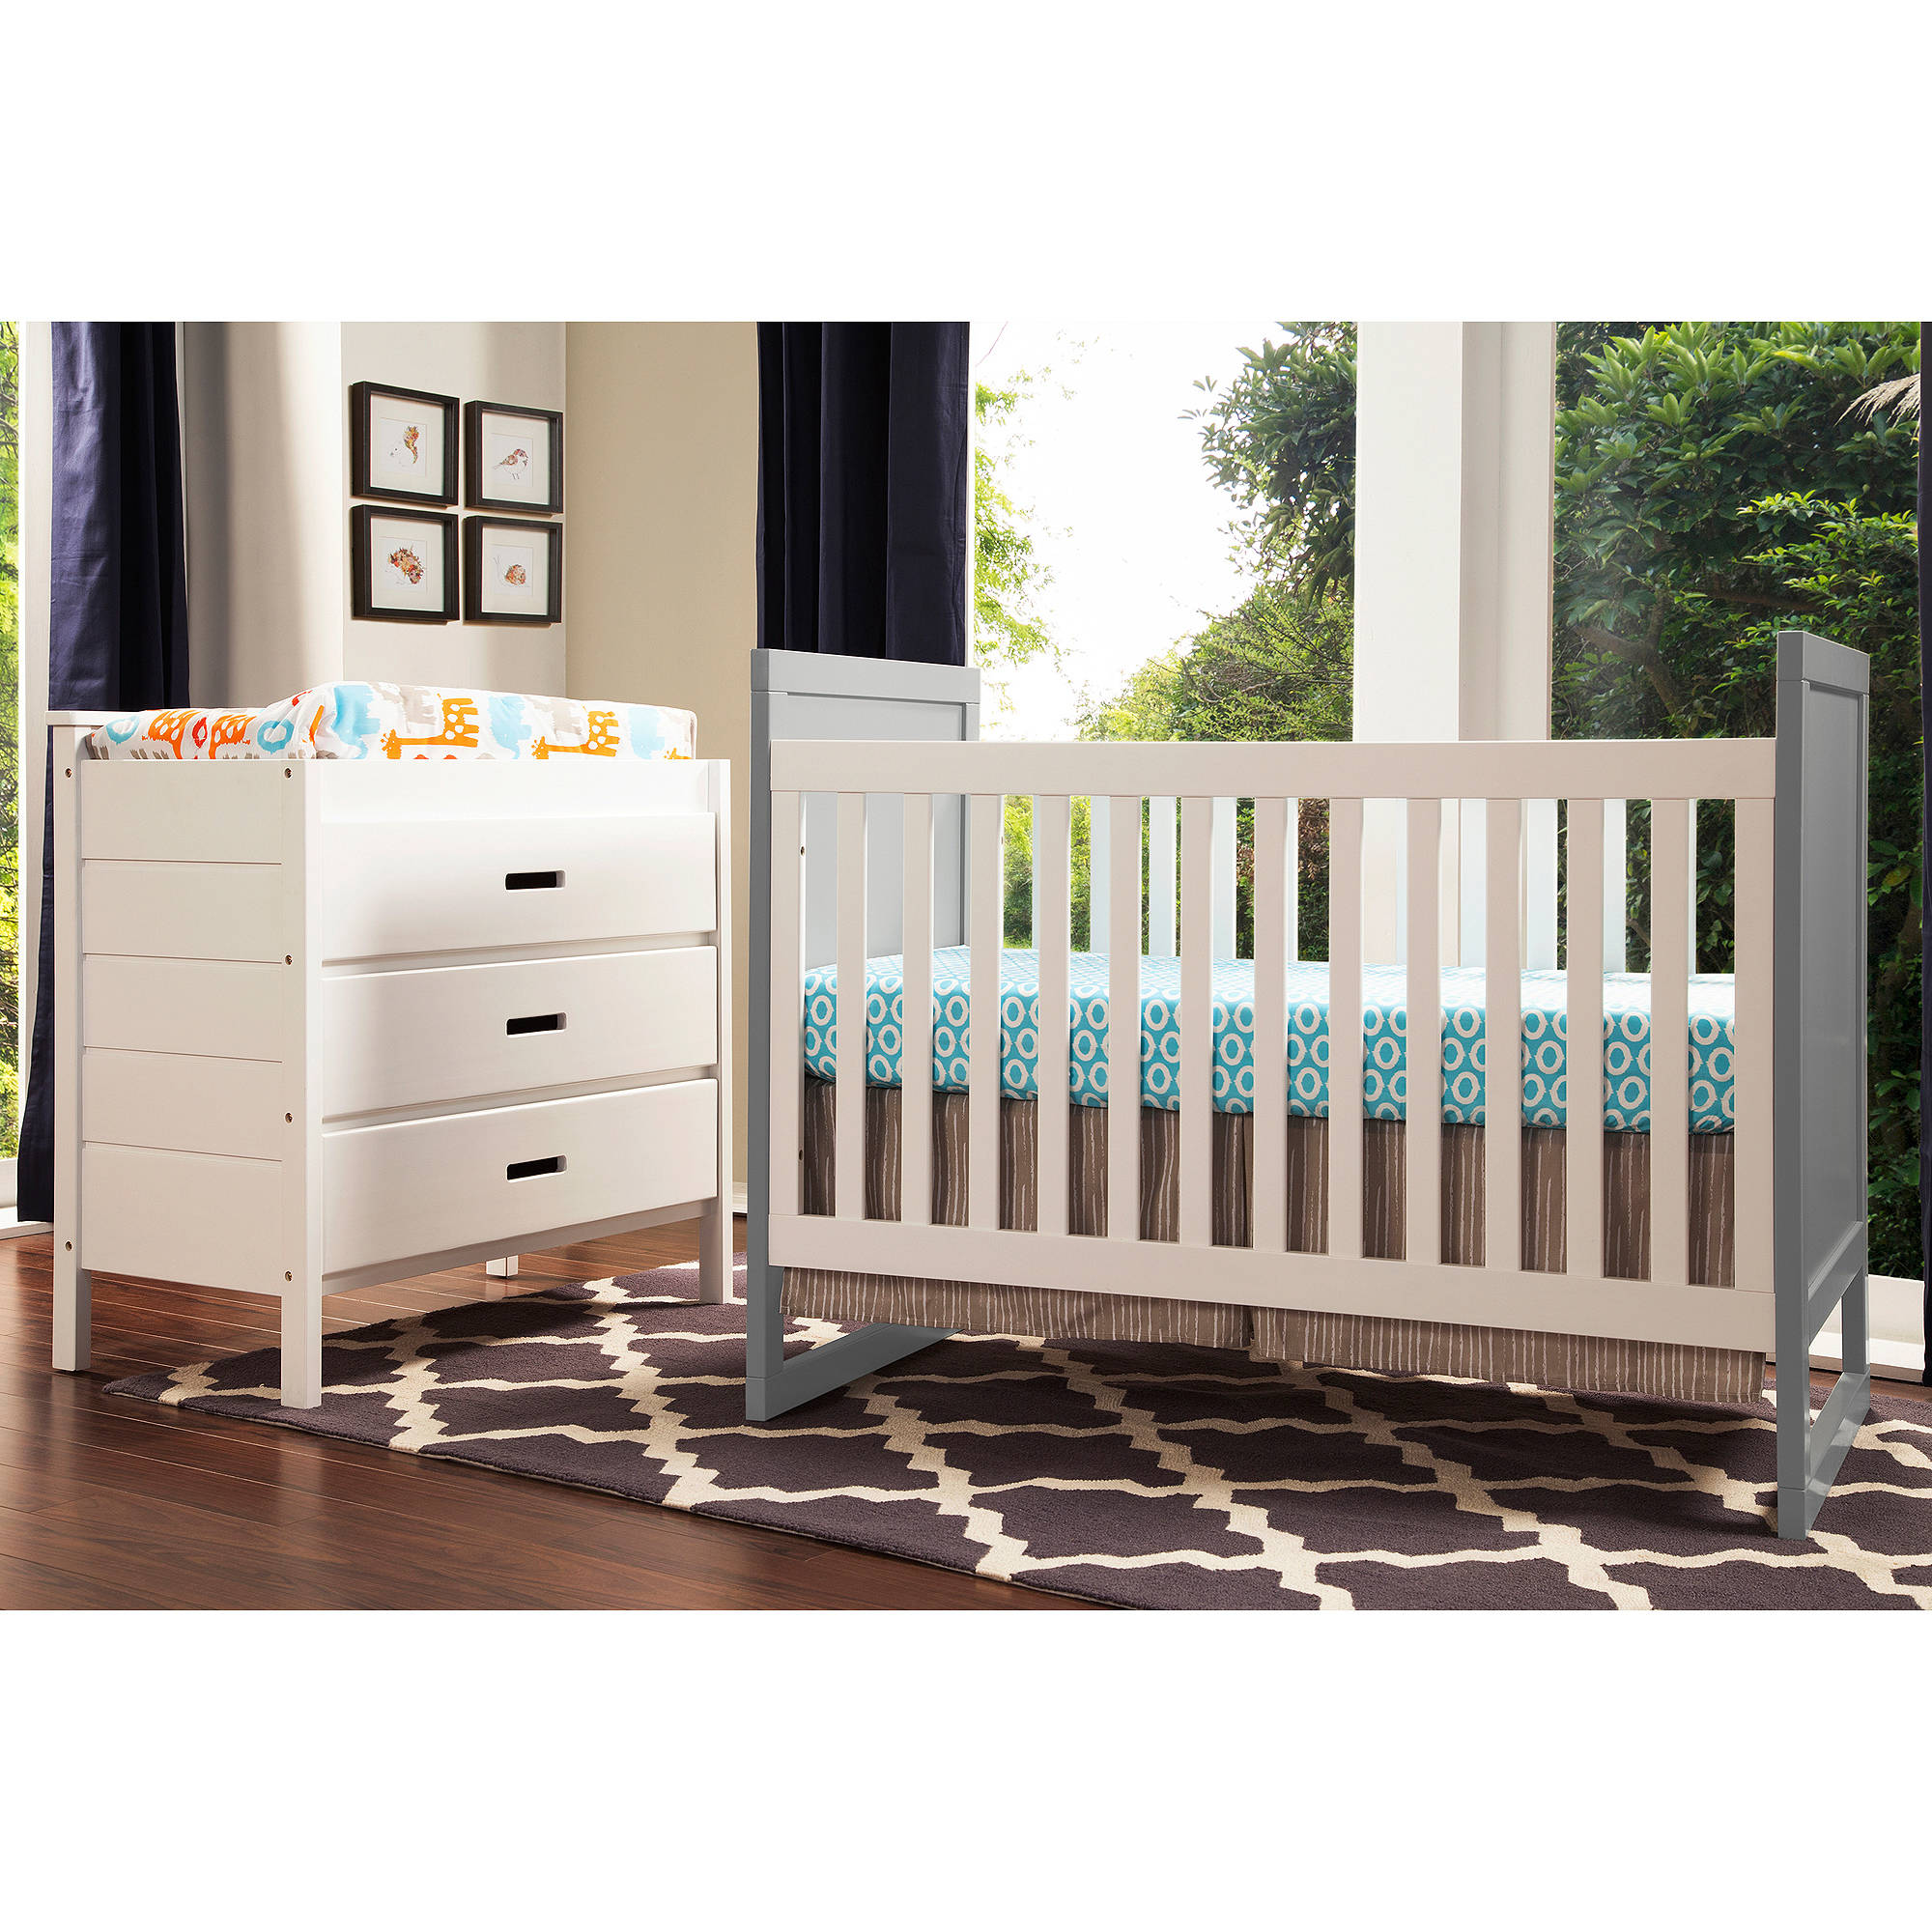 Baby Mod Modena Mod Two Tone 2-in-1 Convertible Crib Gray and White